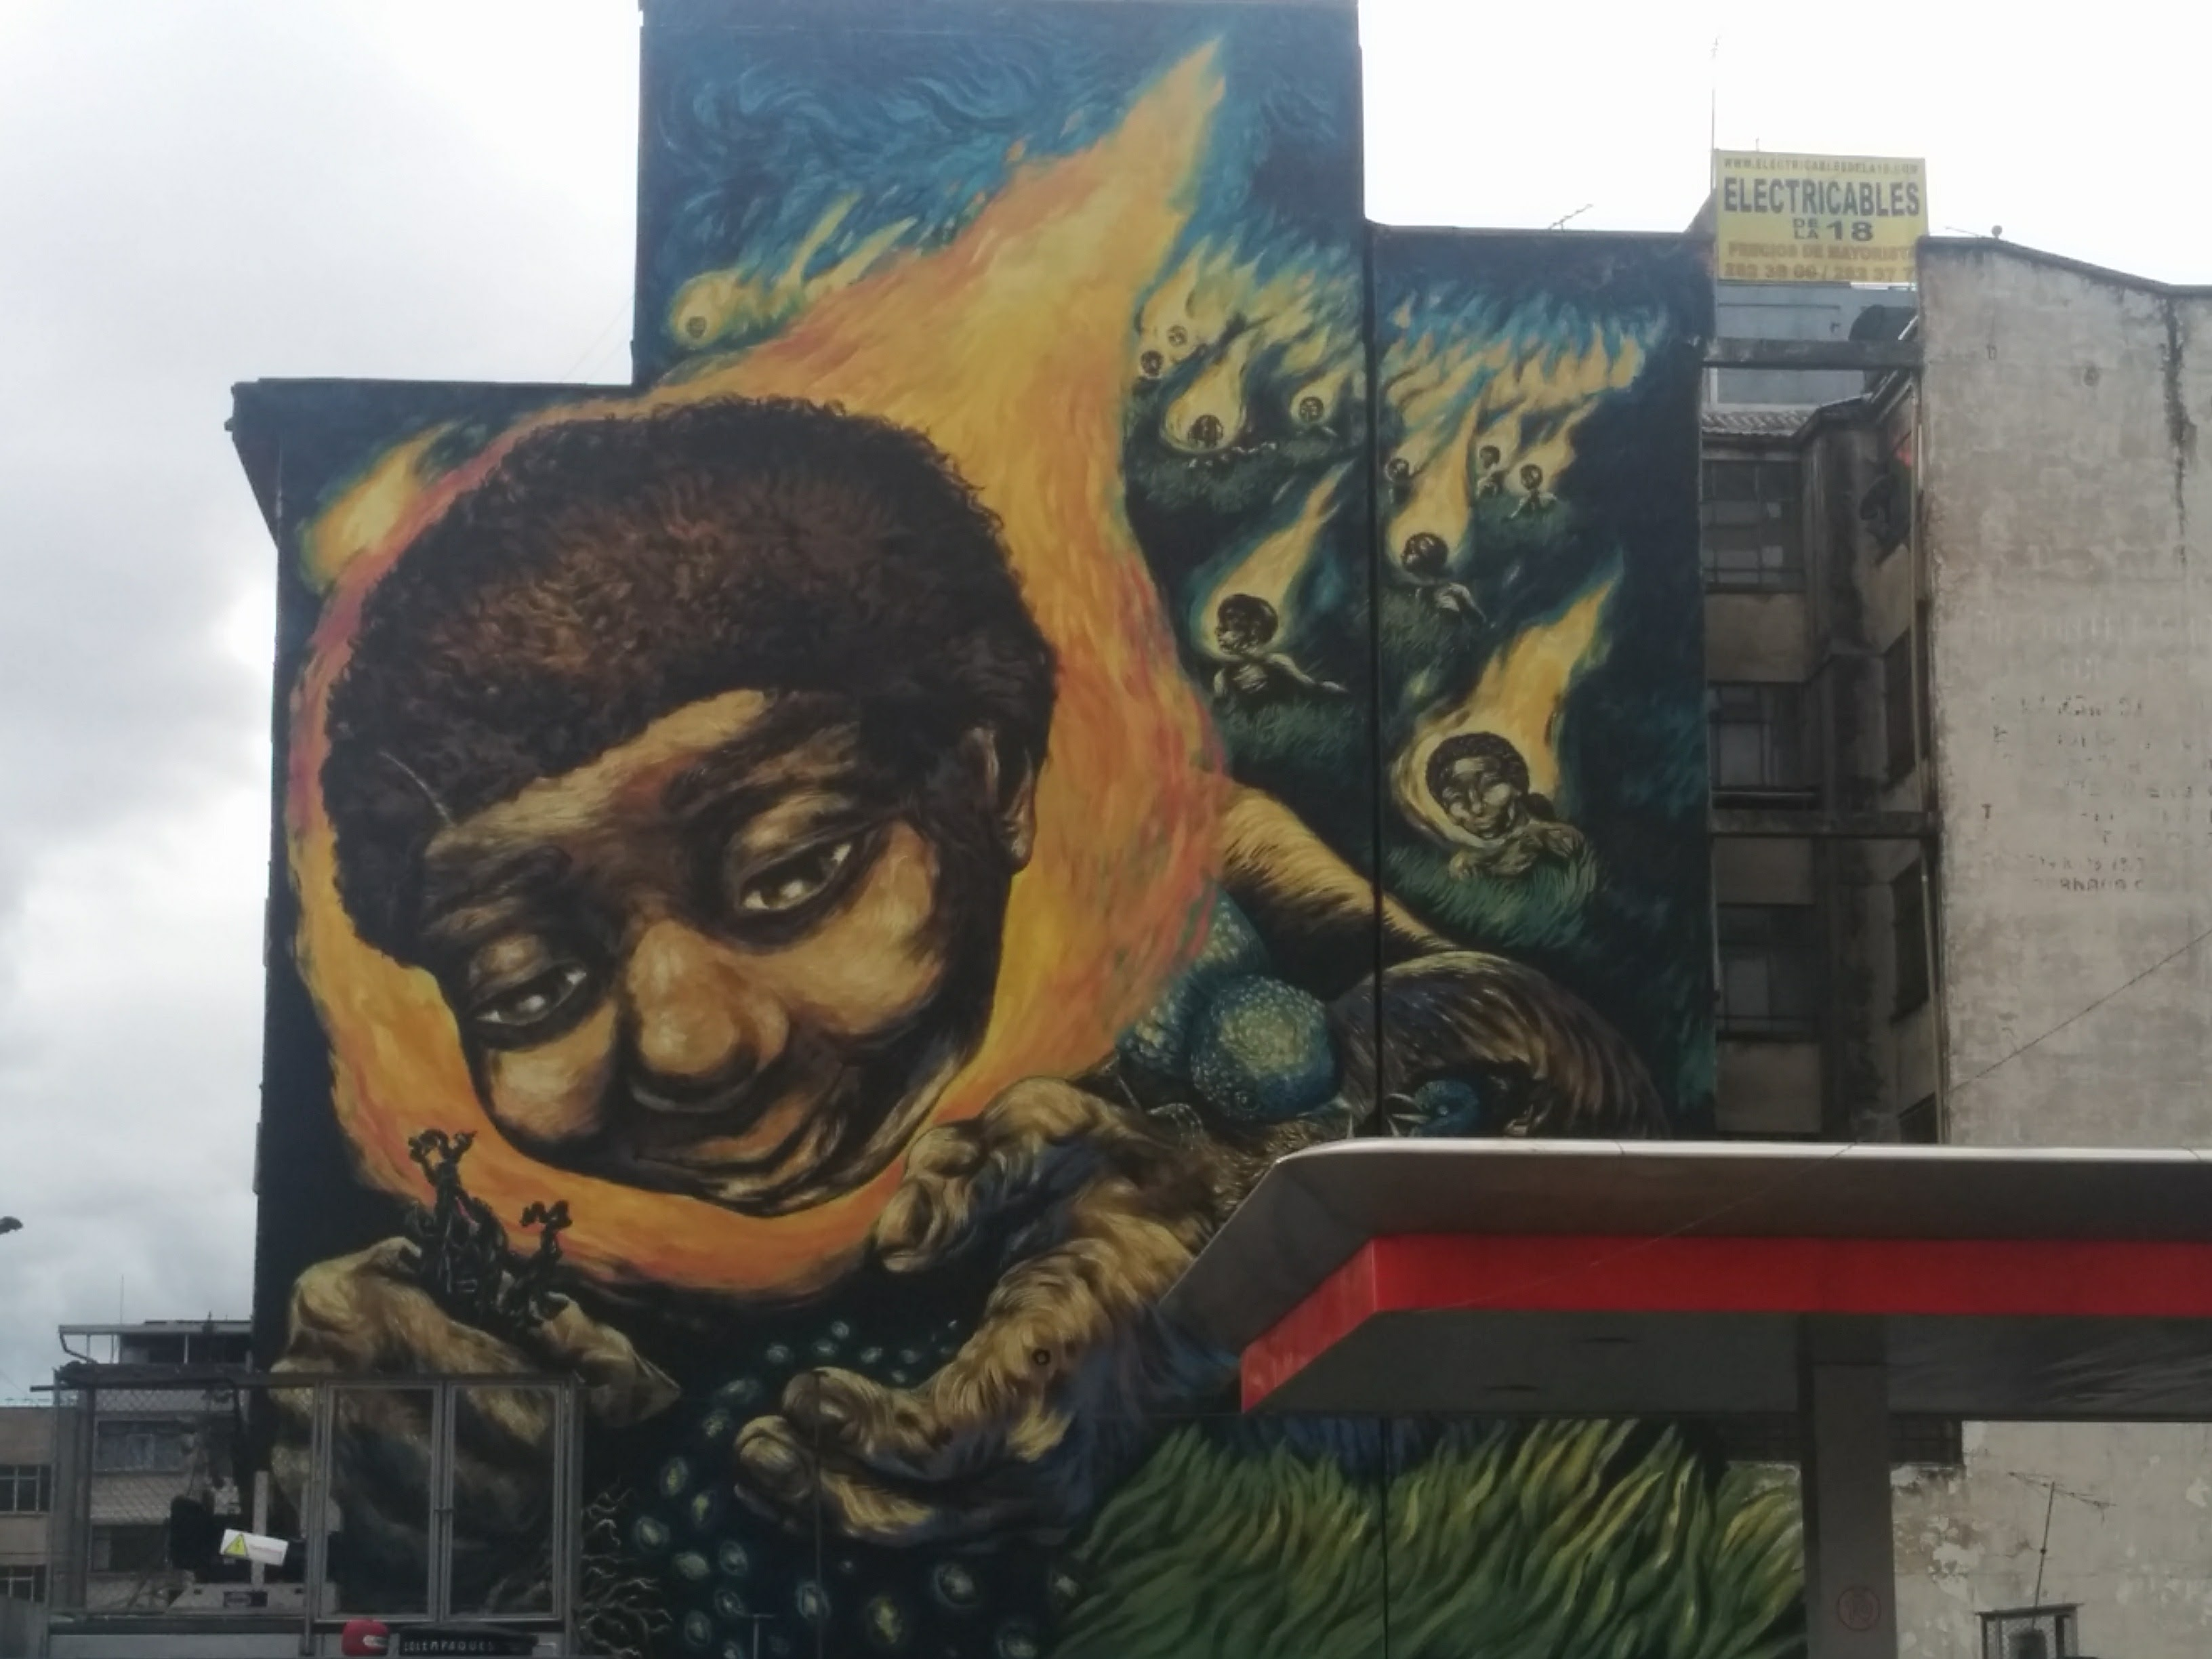 Some Sights and Sounds of Bogotá